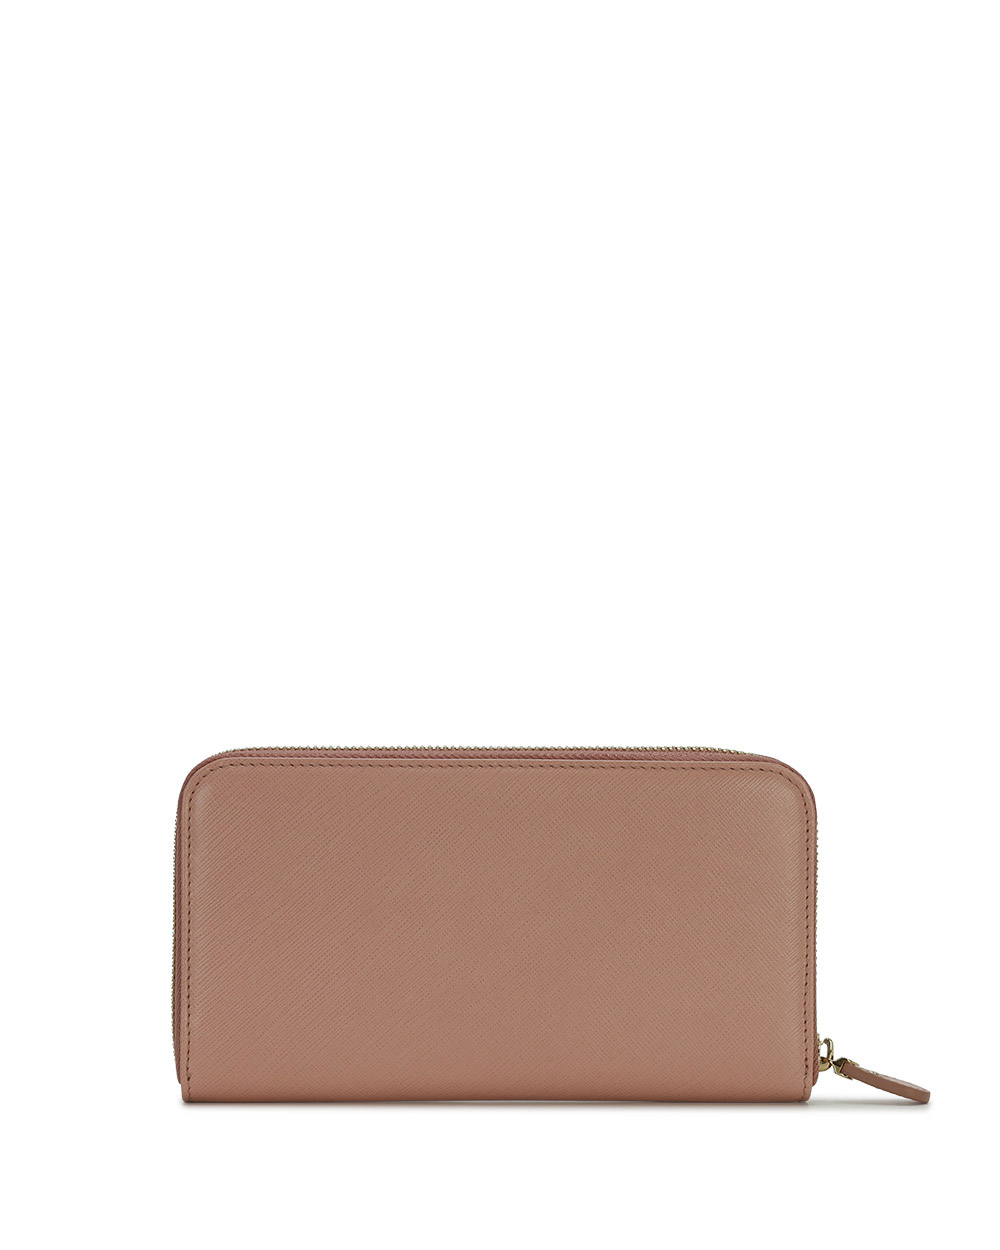 GANCINI Long Wallet 2